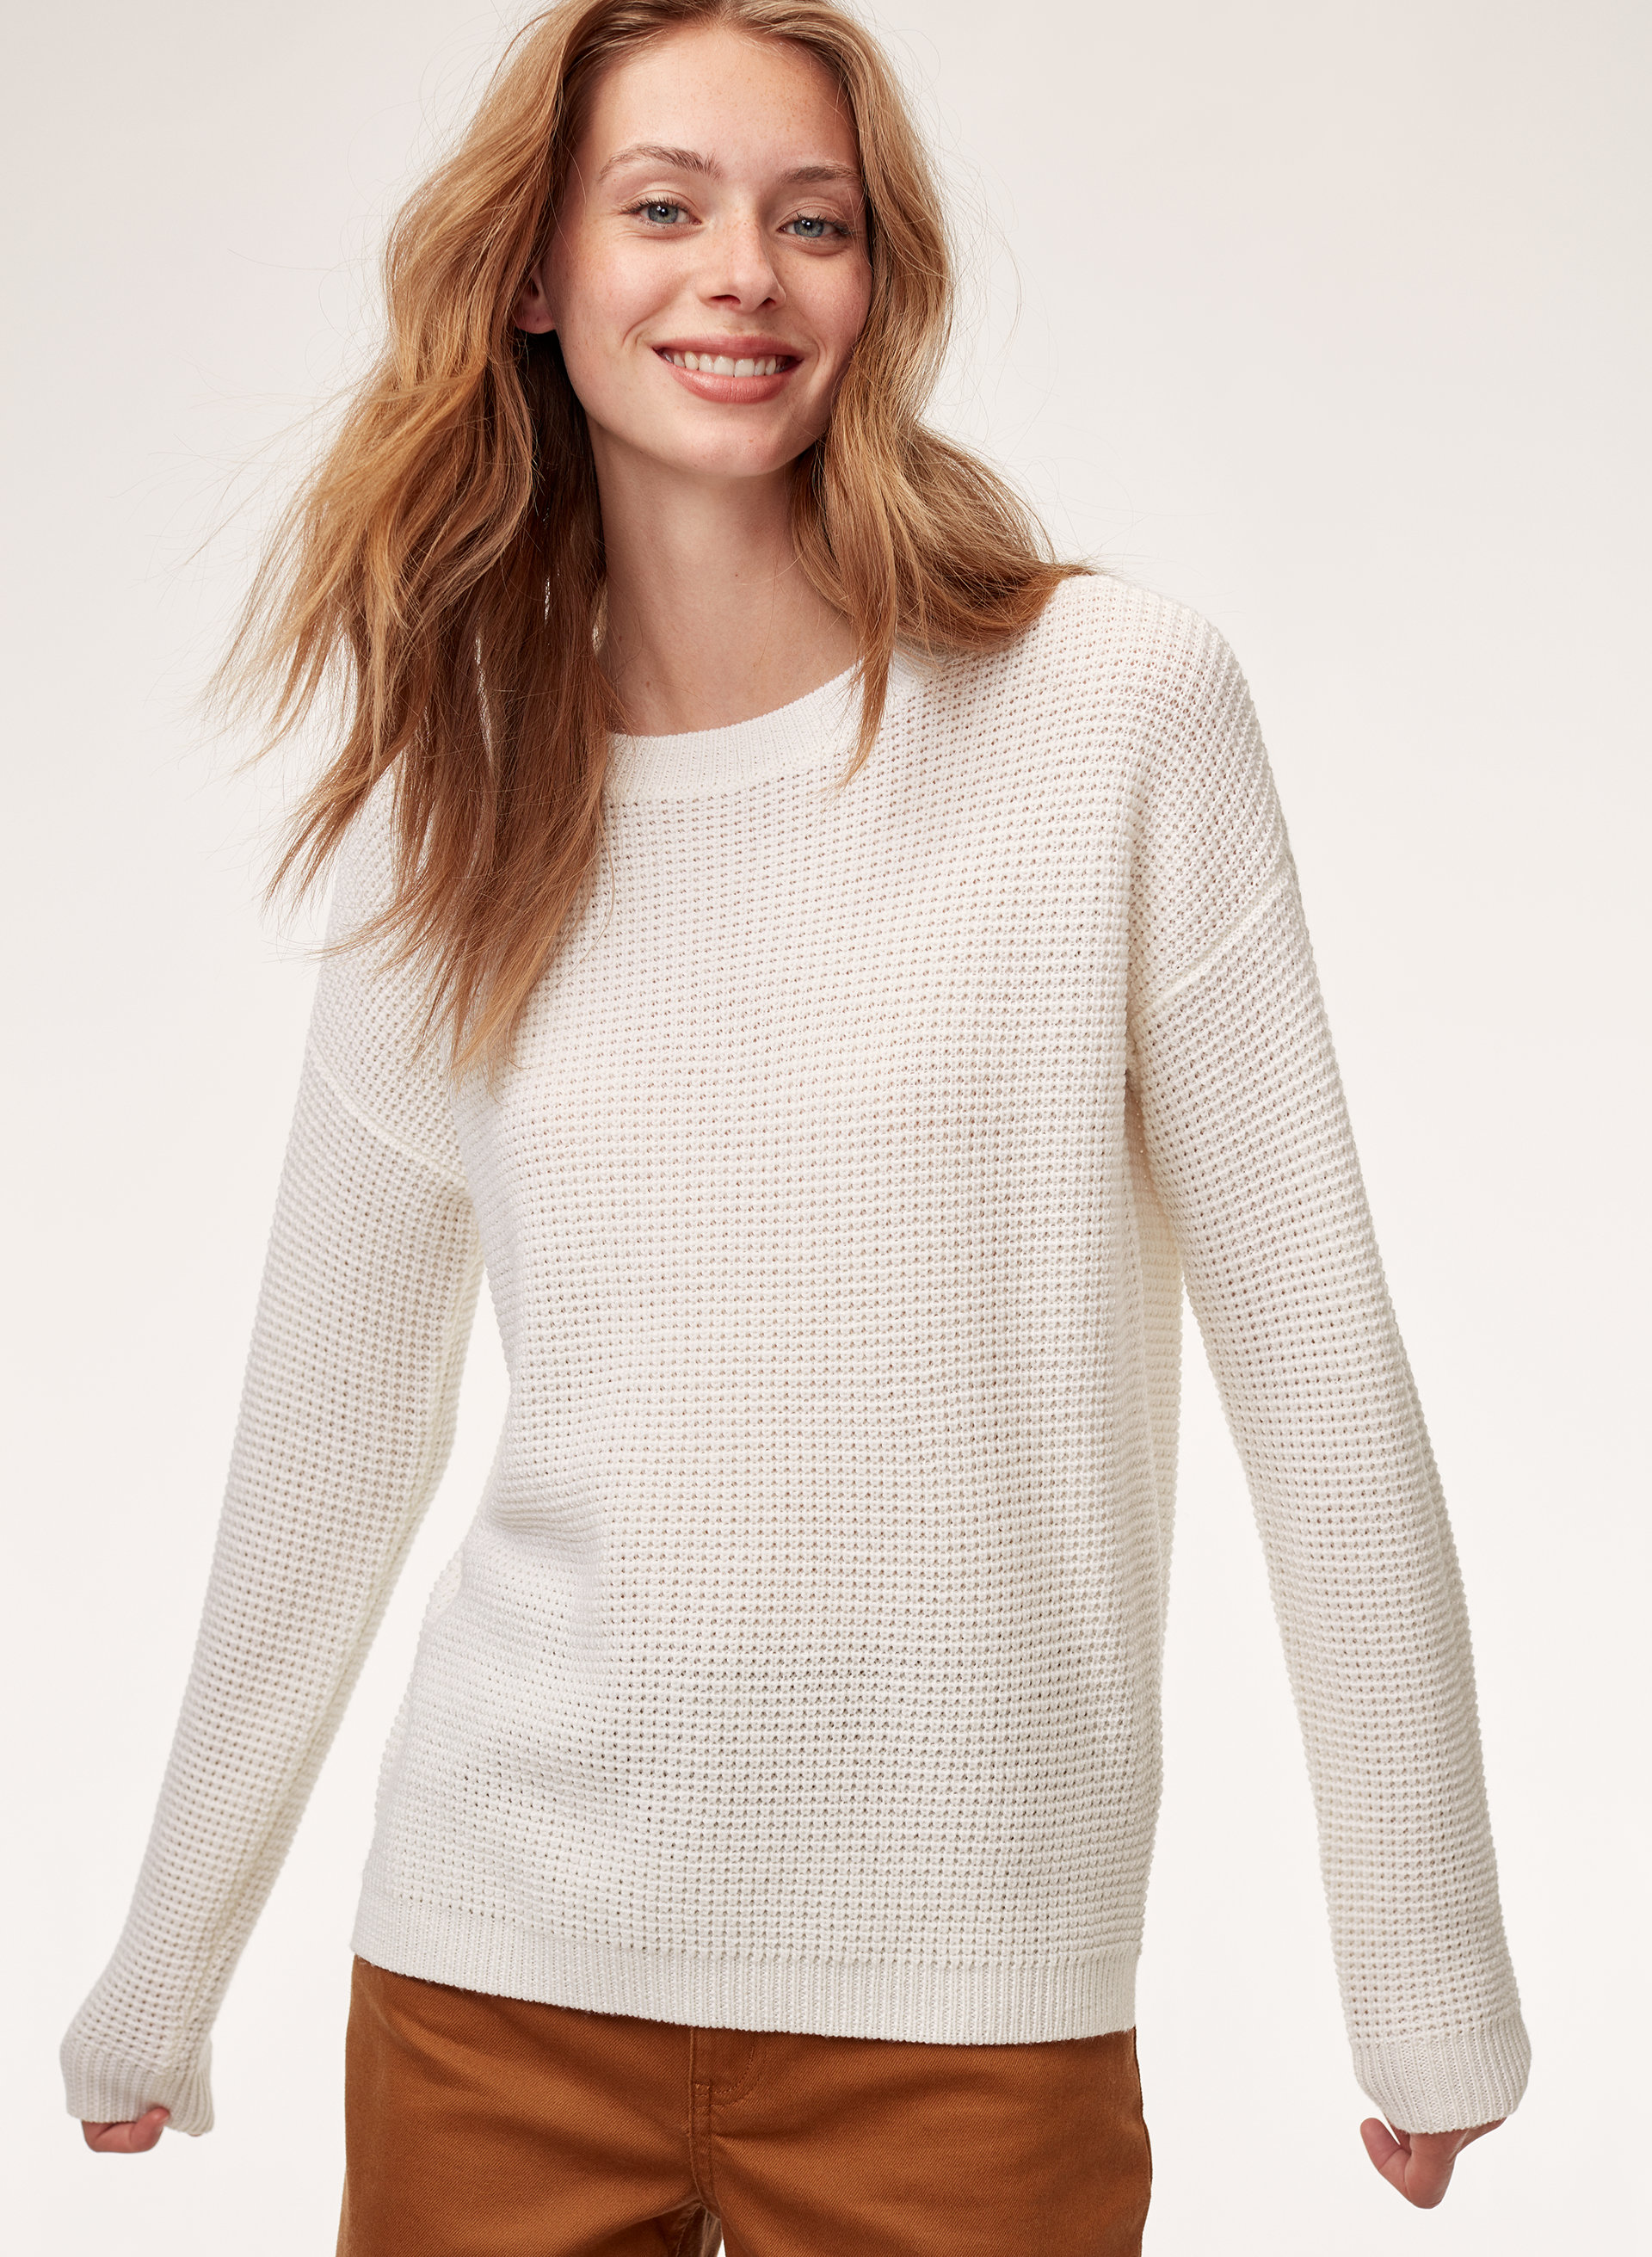 bdcde4d0f9540c Wilfred Free ISABELLI SWEATER